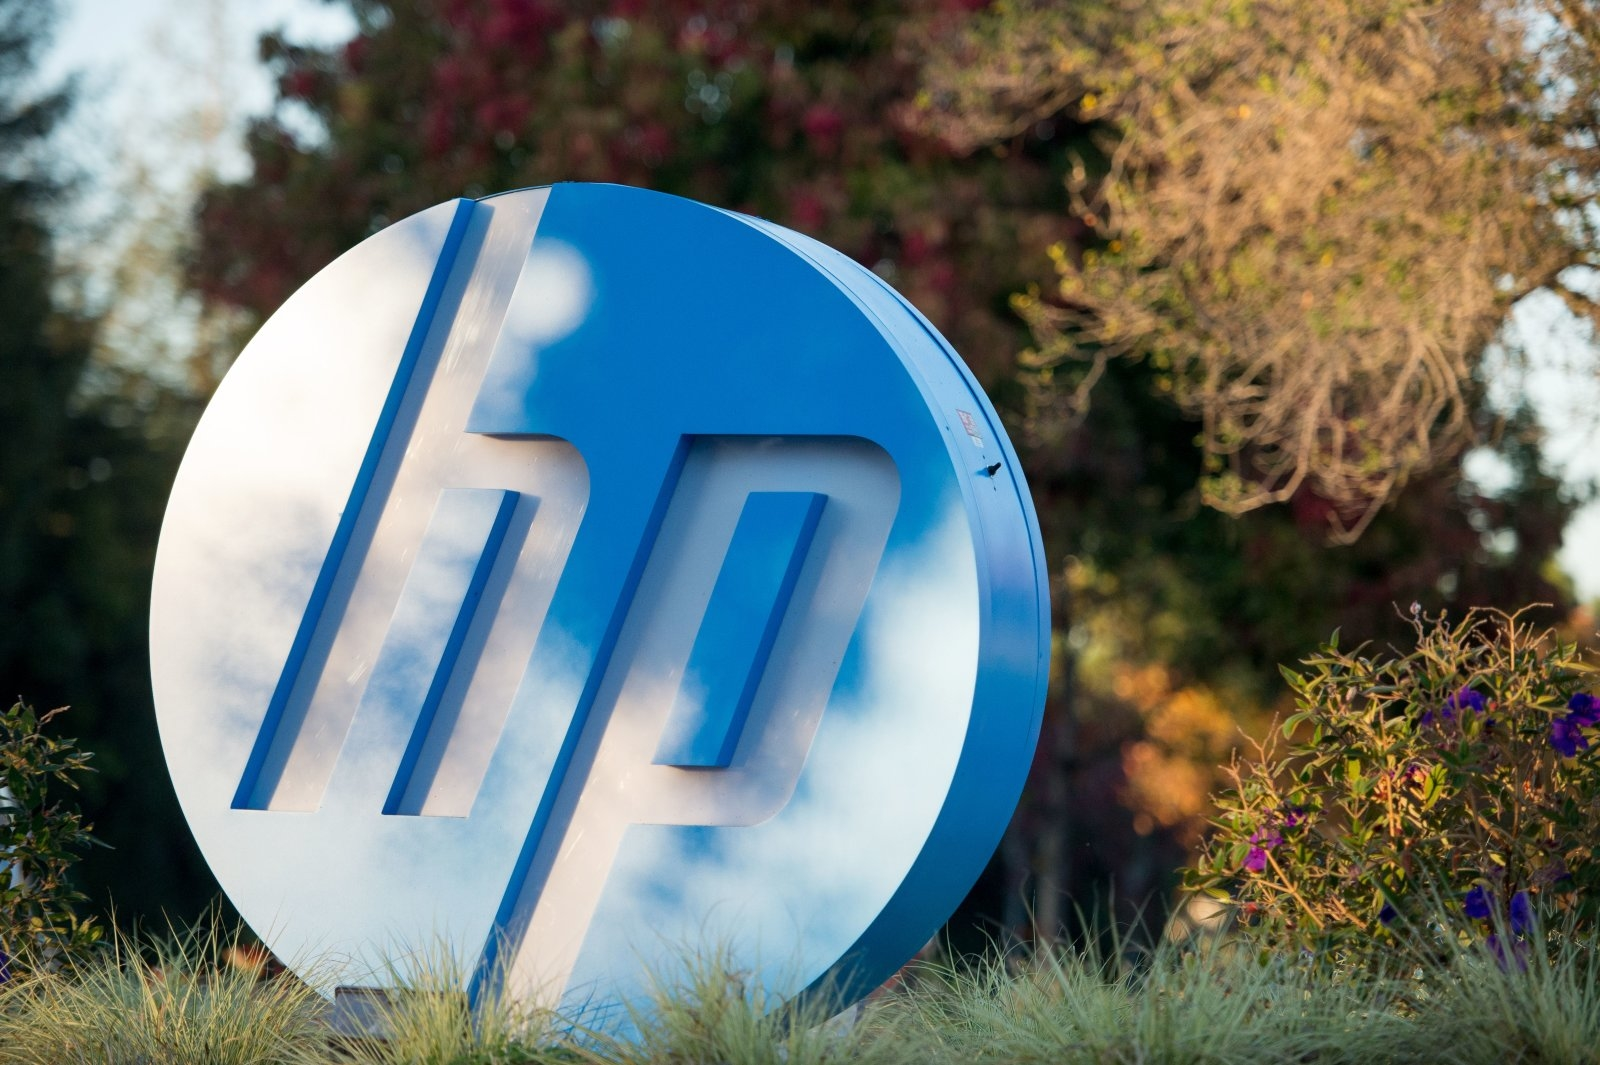 The HP logo is seen on a sign at Hewlett Packard's headquarters in Palo Alto, California on November 4, 2016.  / AFP / JOSH EDELSON        (Photo credit should read JOSH EDELSON/AFP/Getty Images)